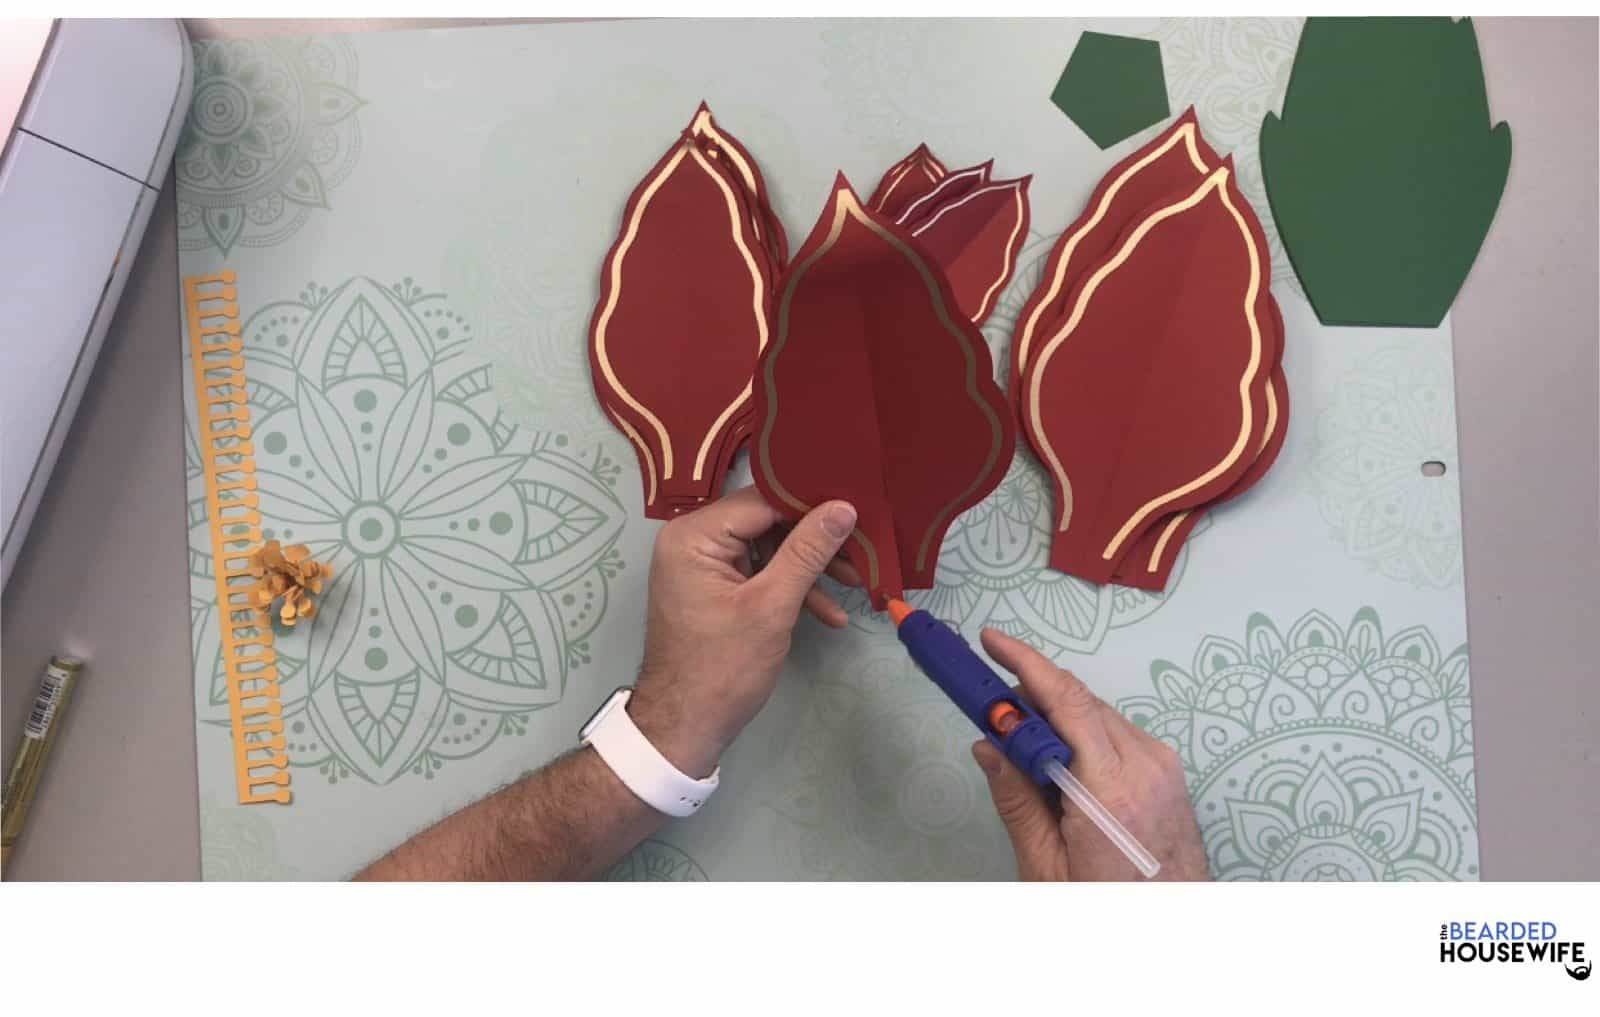 to form your petals, add some hot glue to the bottom left of the petal